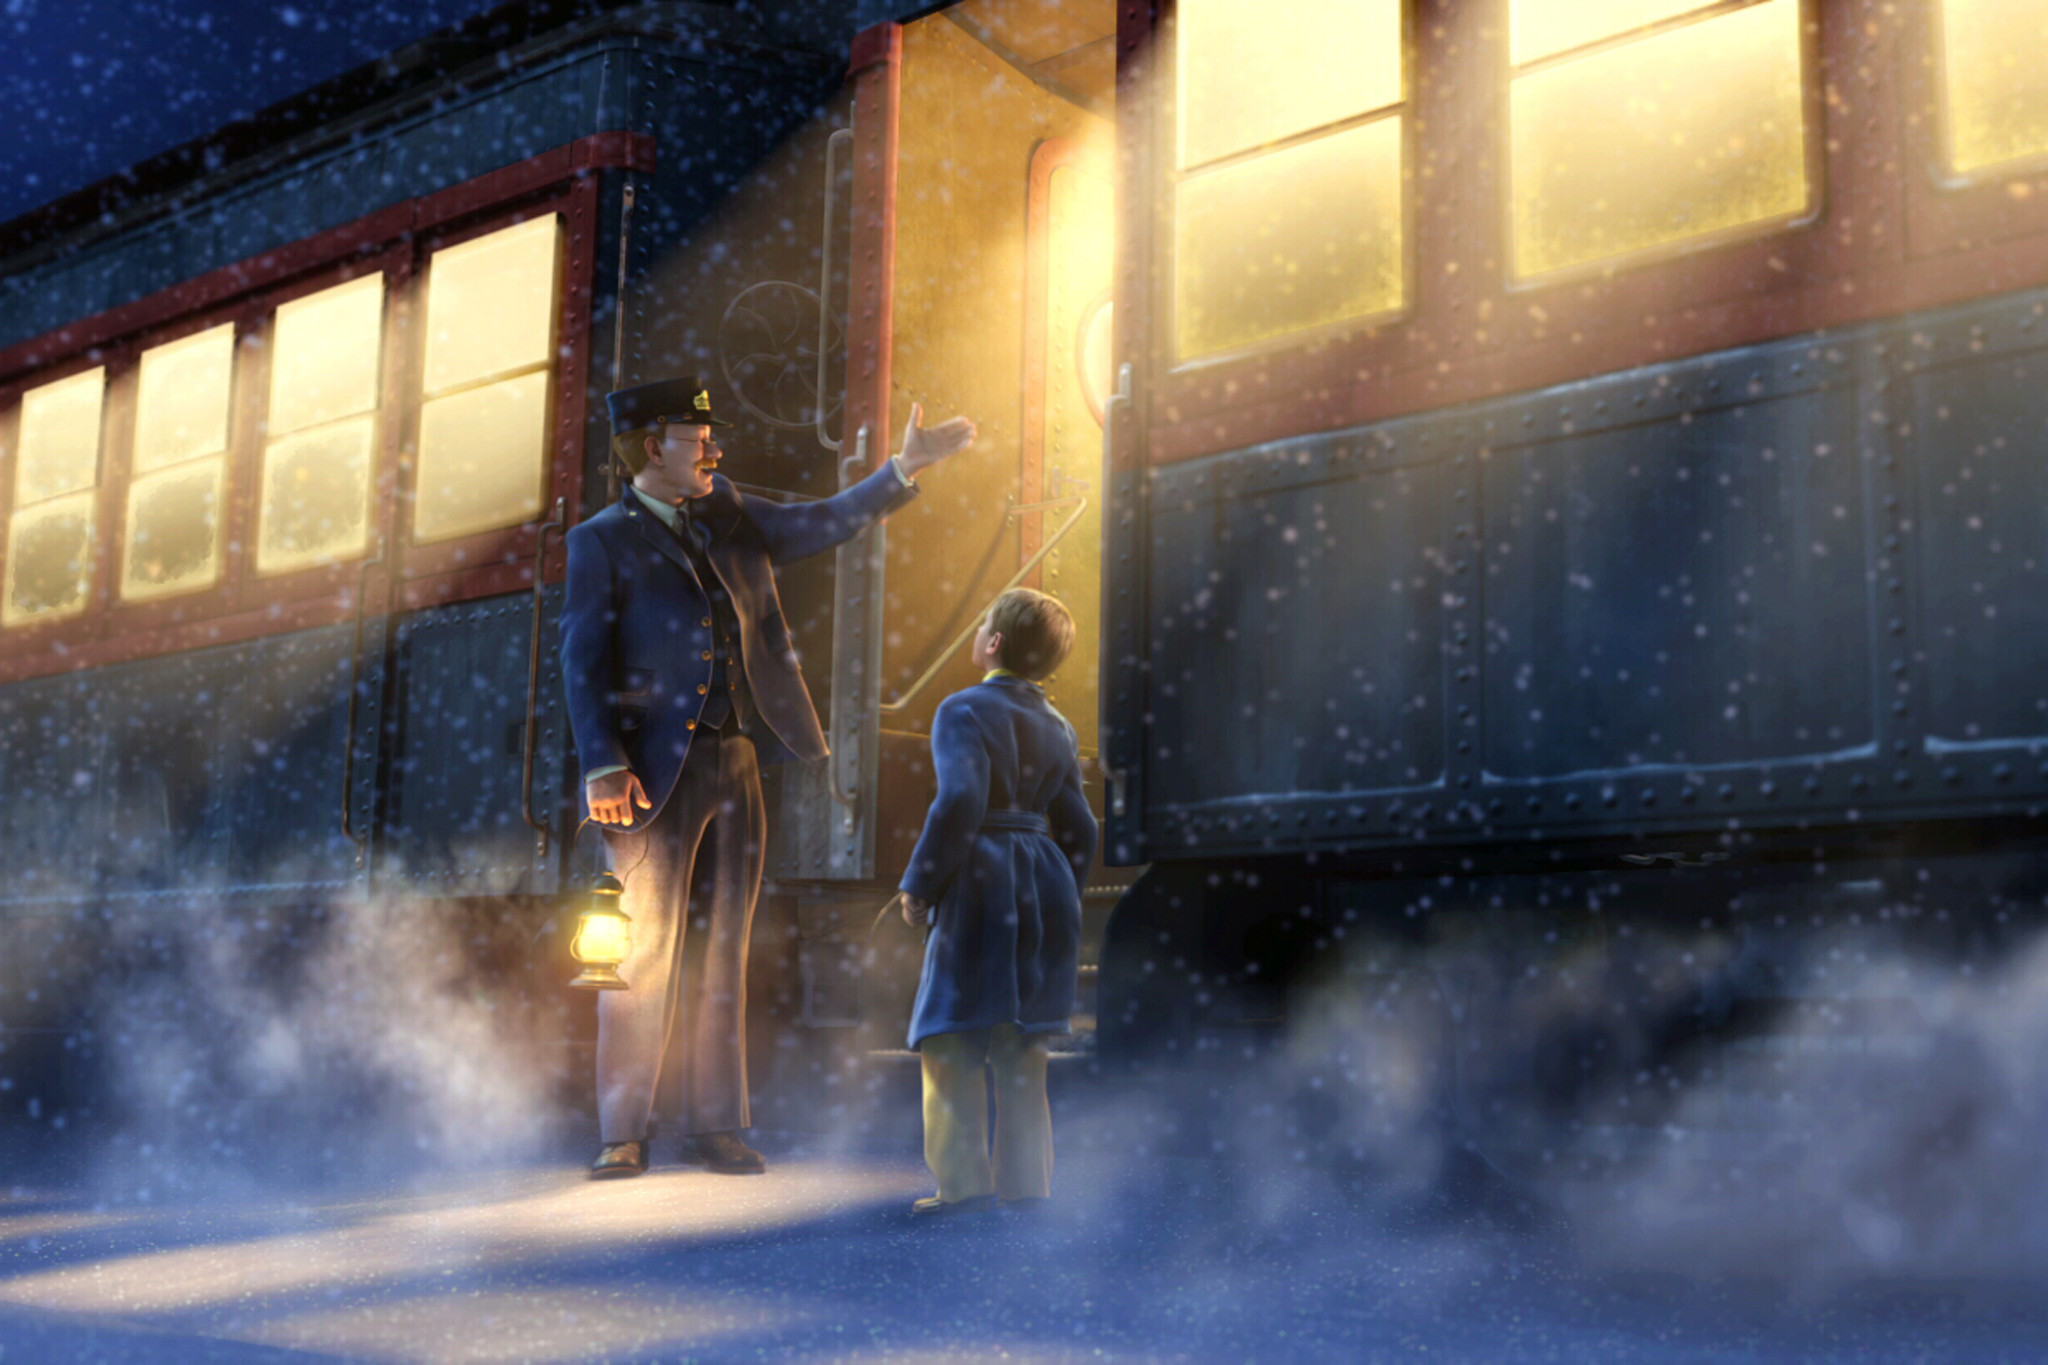 2048x1365 The Polar Express (2004)